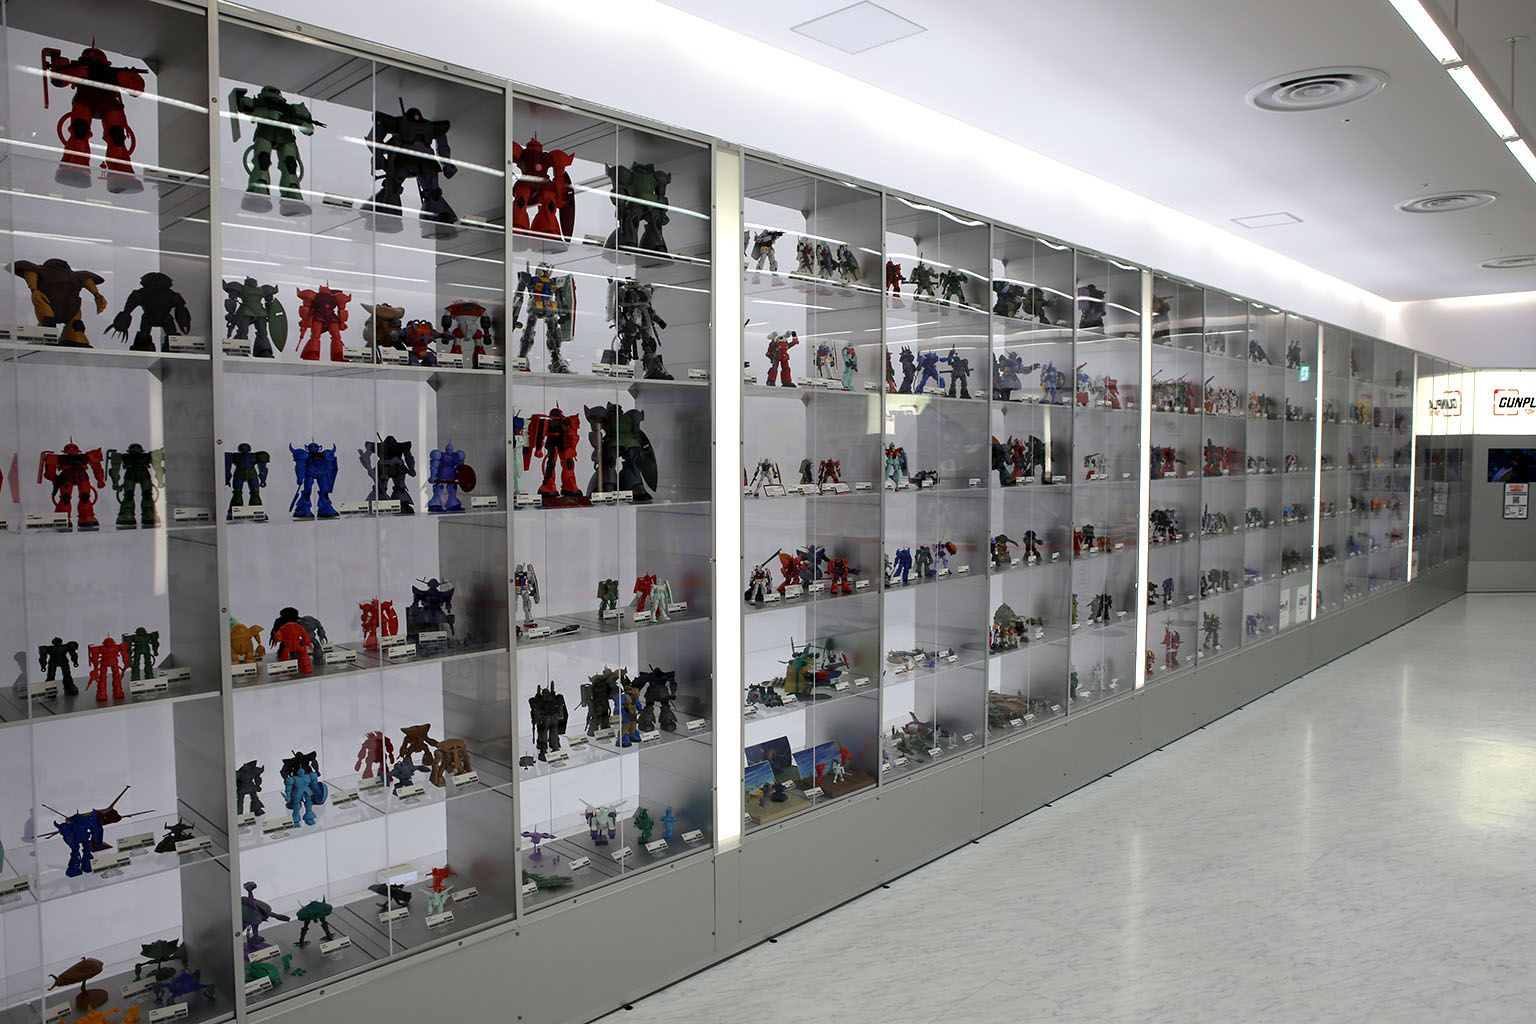 Pin By Pia Saveron On Display Cases For Gundam Displaying Collections House Design Display Case